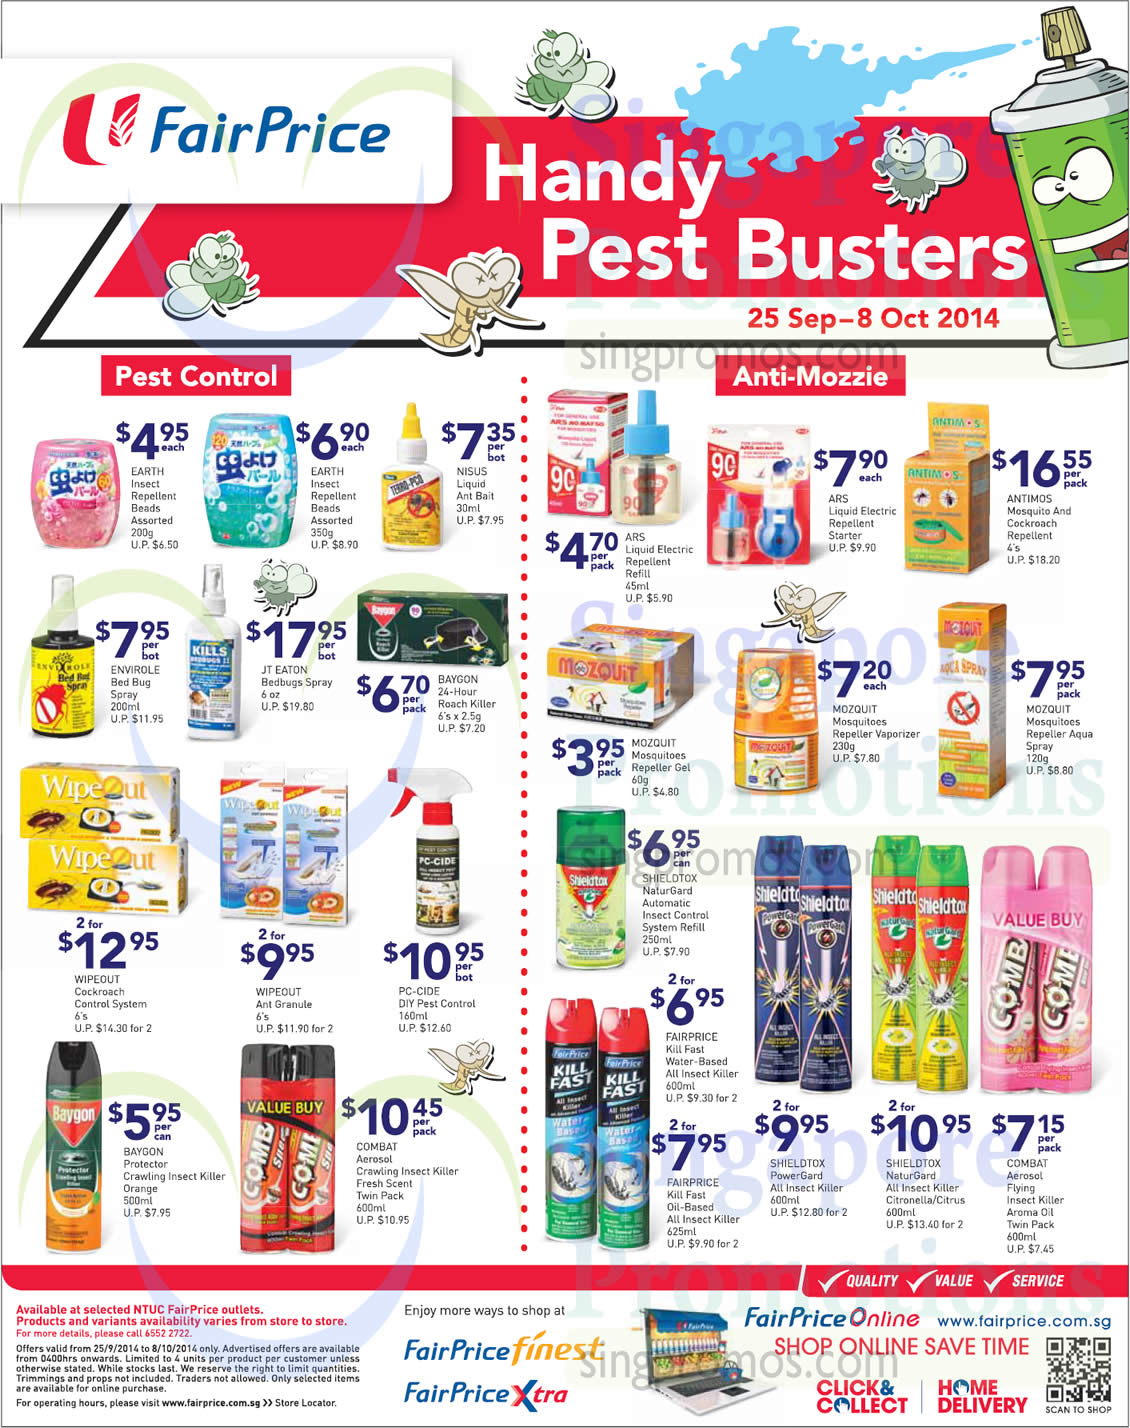 Handy Pest Busters Wipeout Baygon Combat Mozquit Antimos Ars